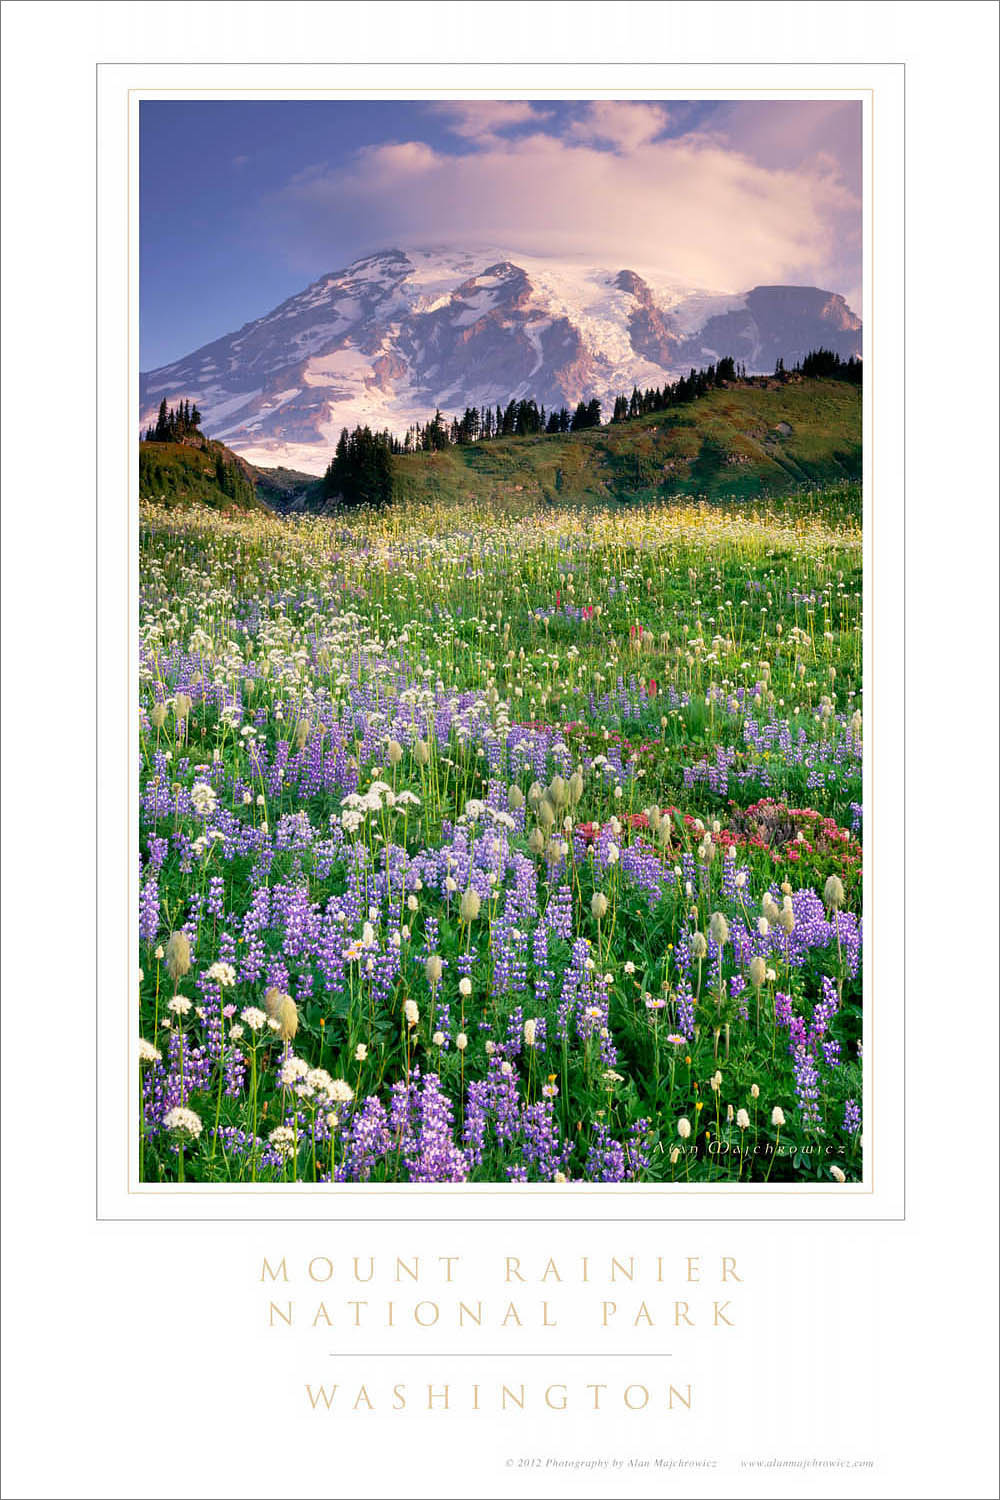 Mount Rainer Wildflowers